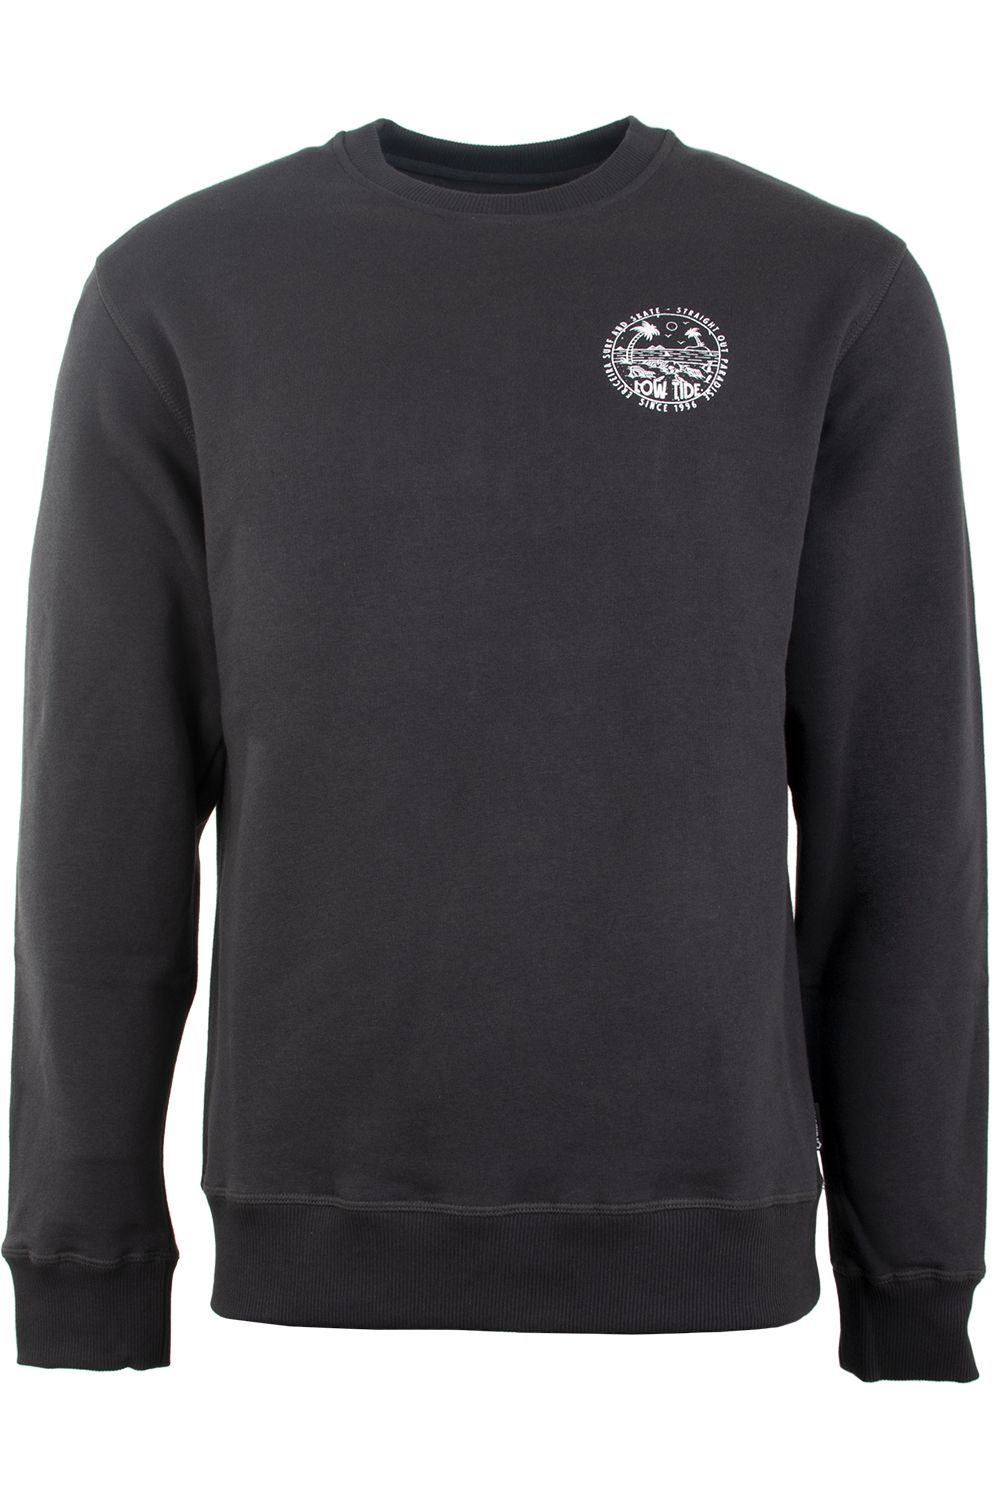 Sweat Basica Ericeira Surf Skate LOST ISLAND Dk Charcoal